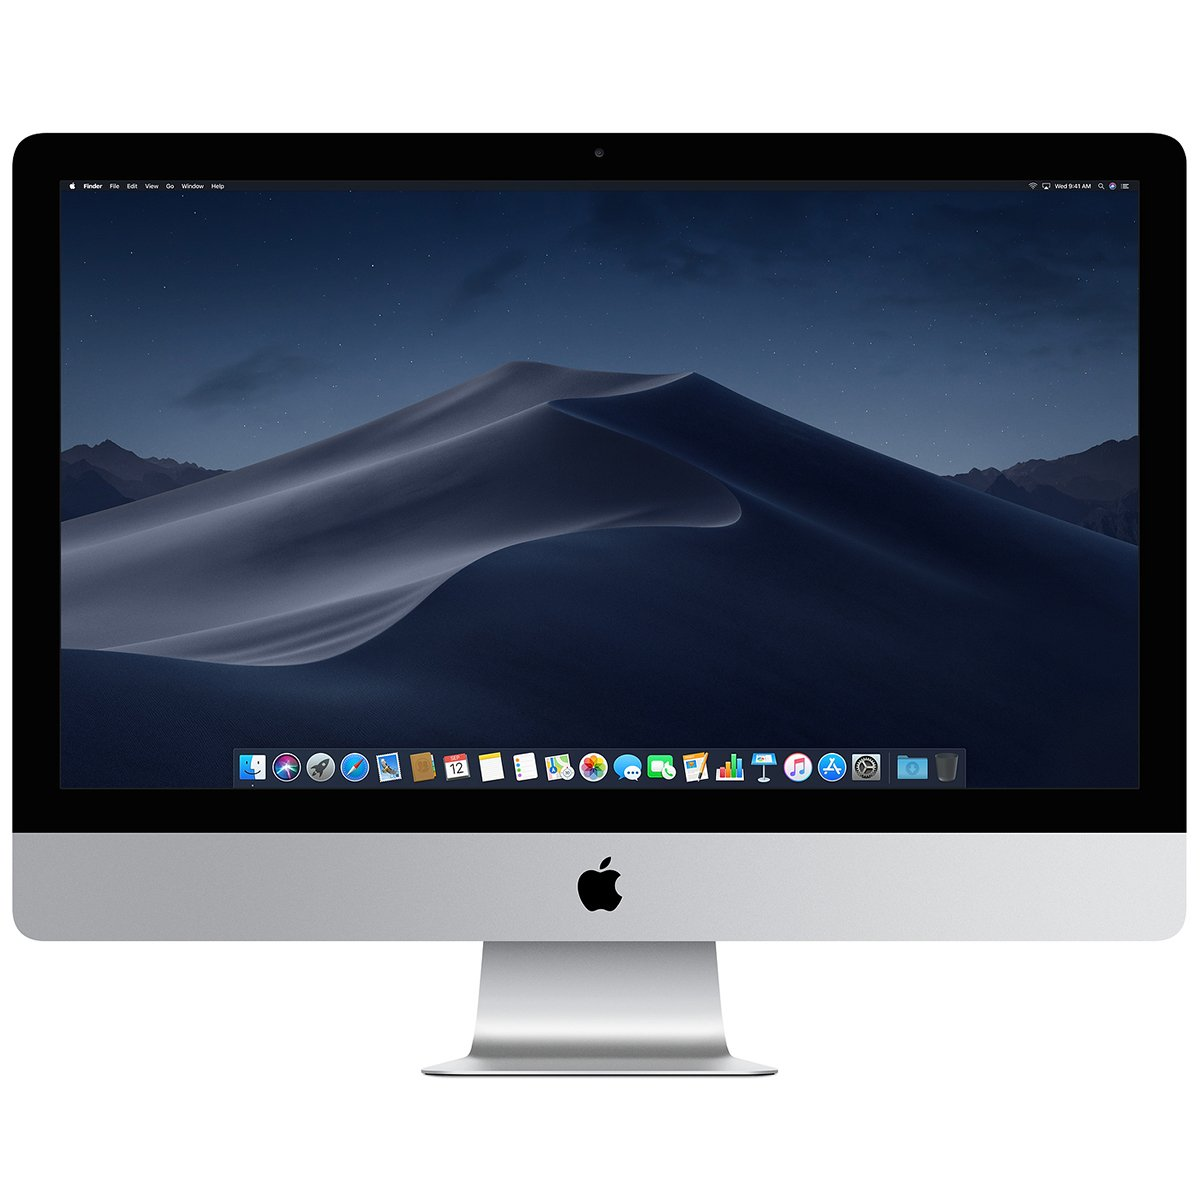 Apple IMAC 27* 3.1GHz 6-core Intel Core i5, Turbo Boost up to 4.3GHz/8GB/1 TB